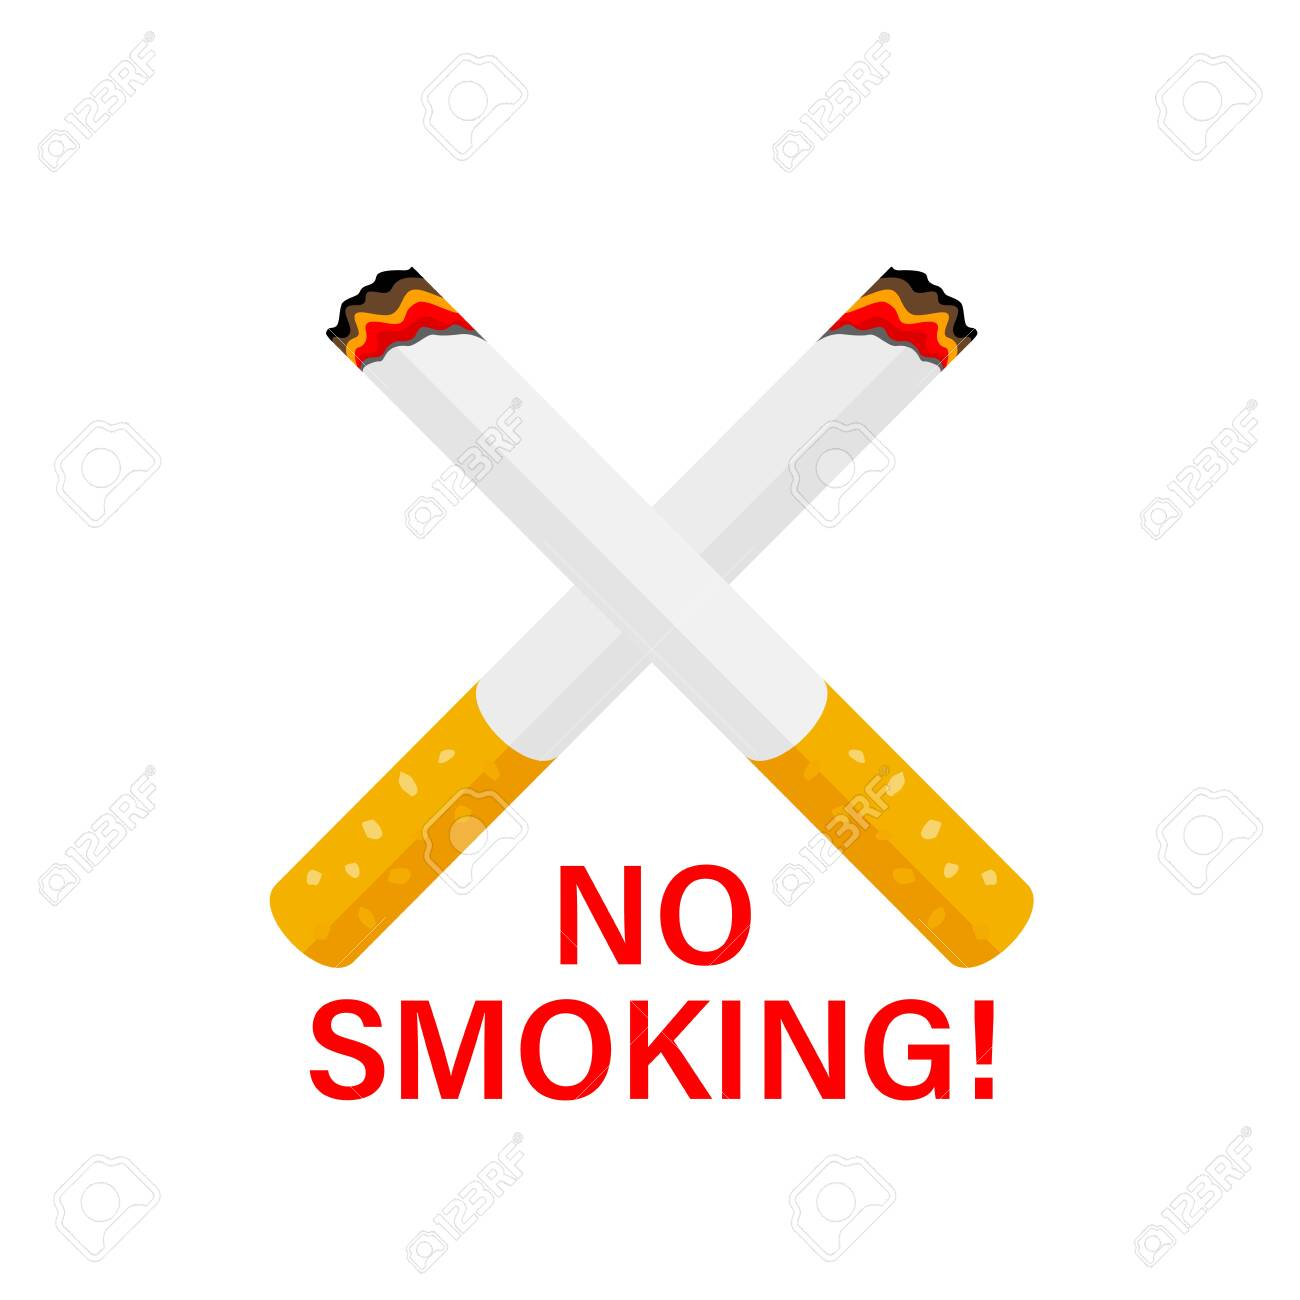 Cross Shaped Cigarette No Smoking Concept Vector Illustration Royalty Free Cliparts Vectors And Stock Illustration Image 147895447